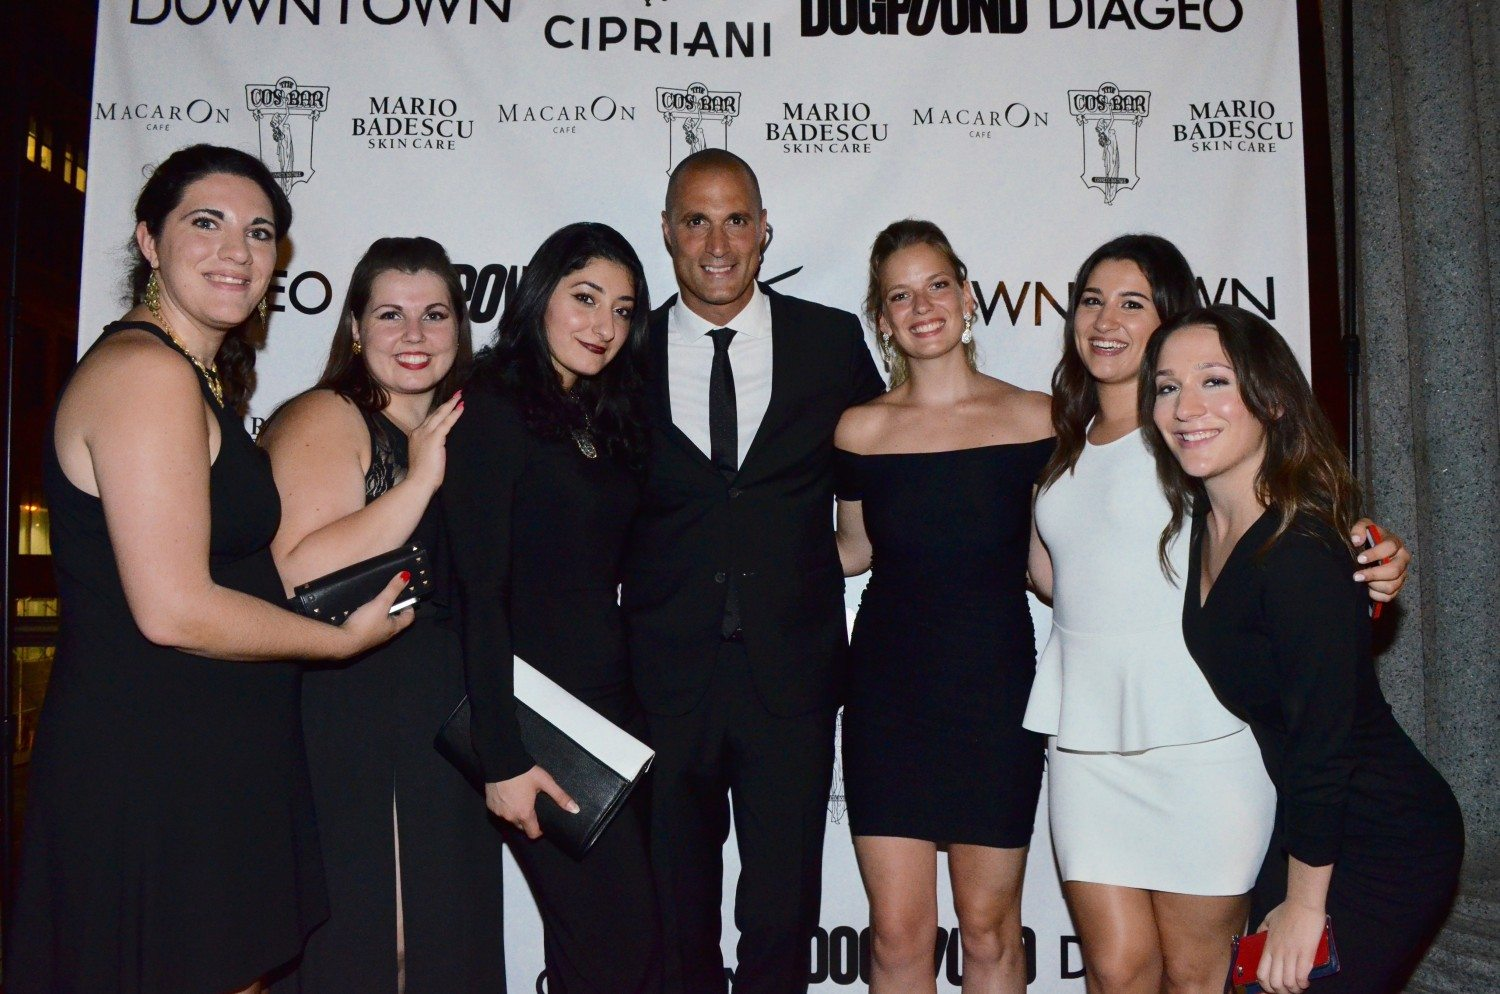 Nigel Barker and the Downtown Magazine staff